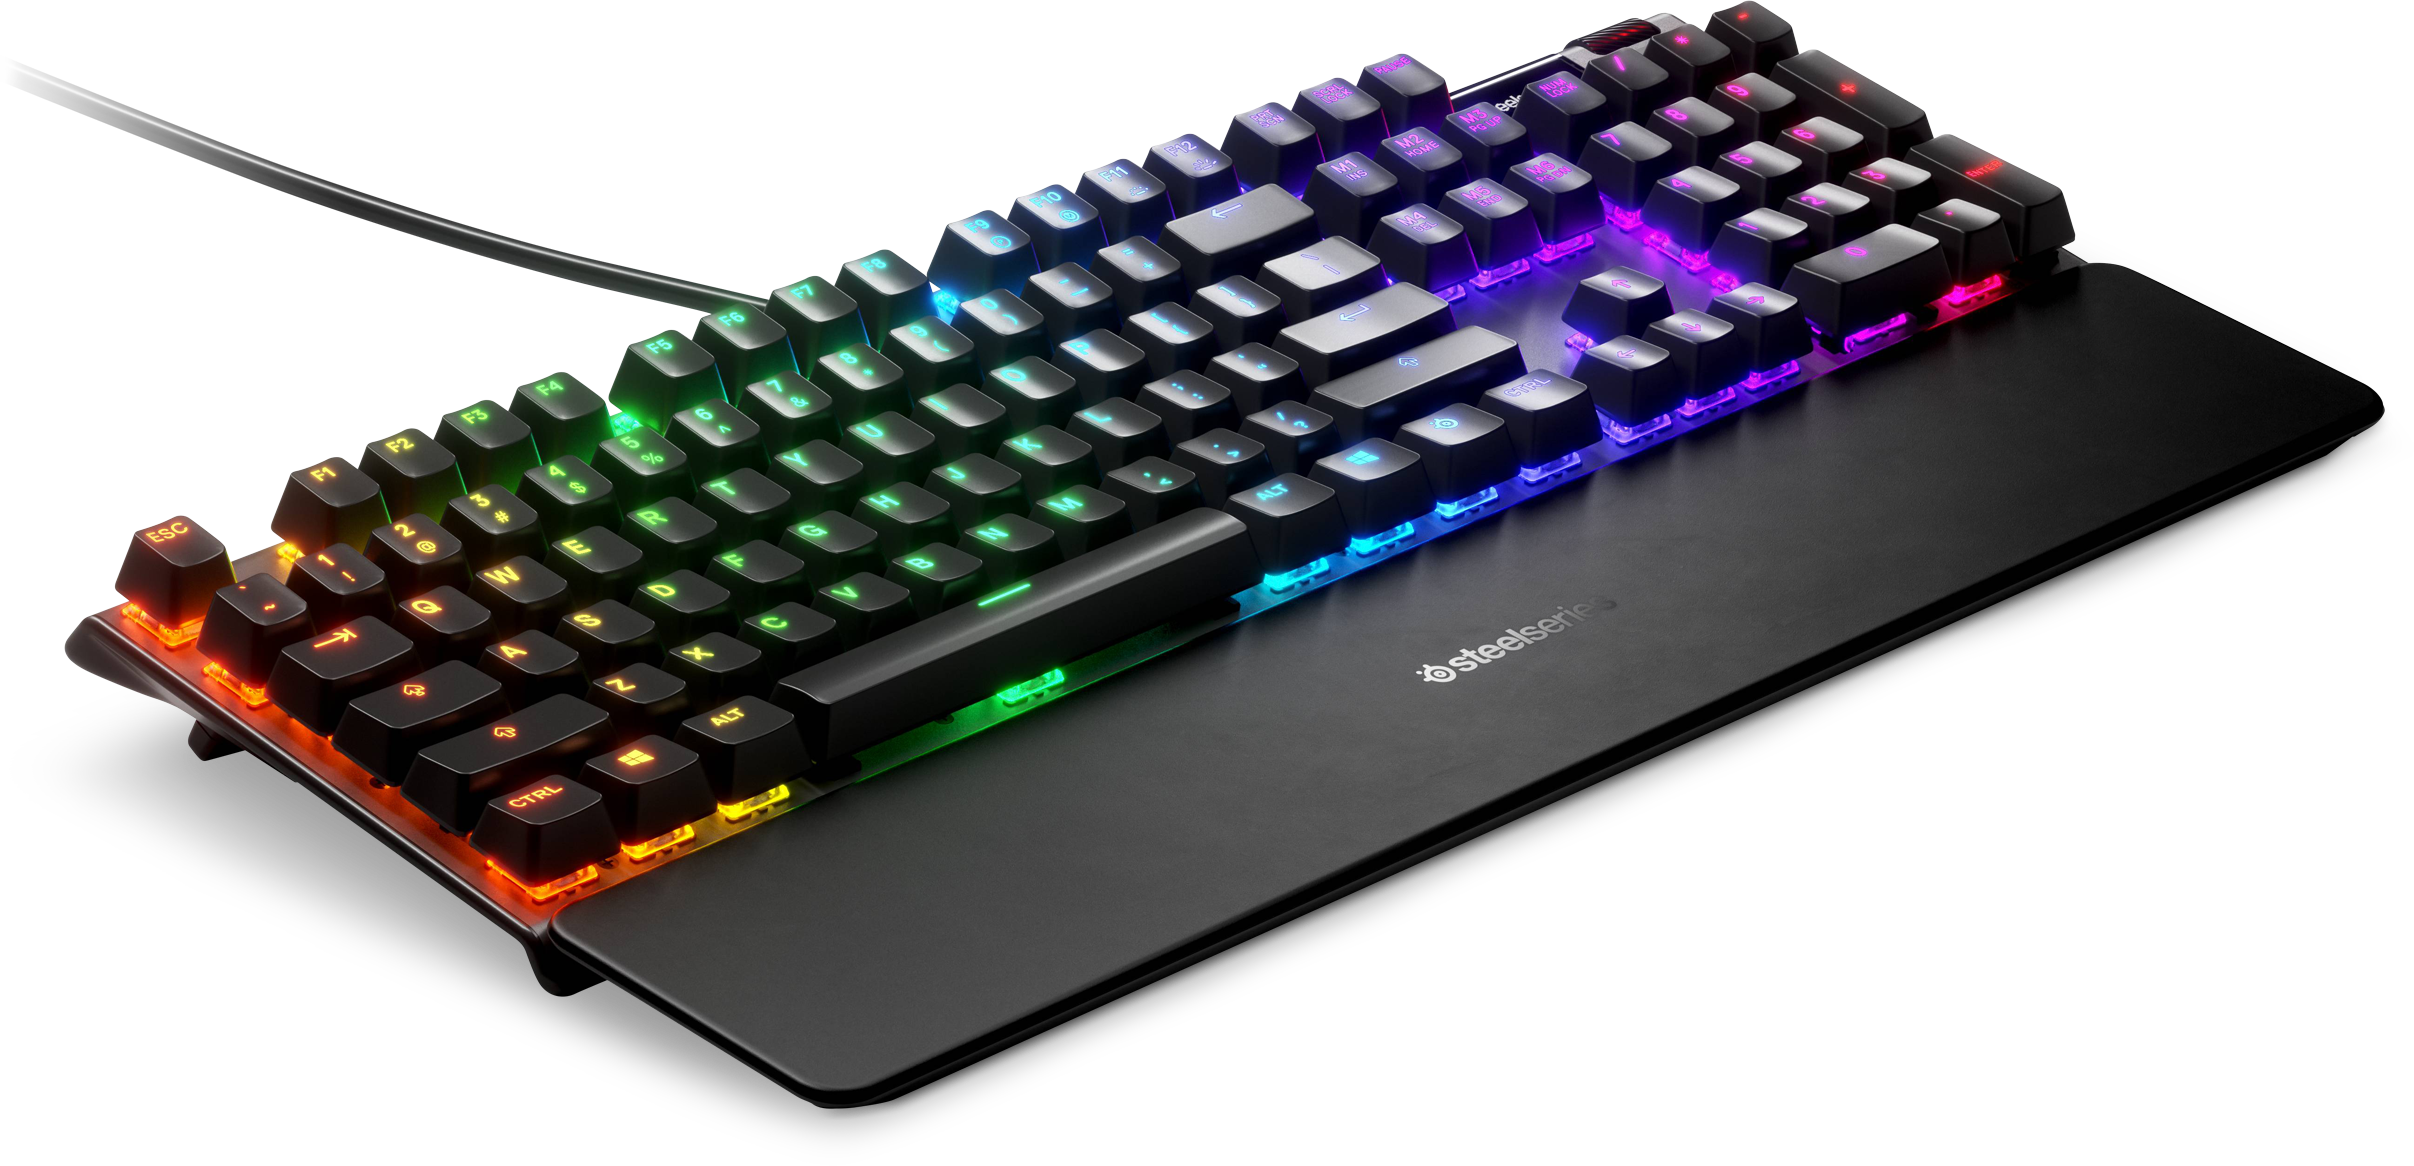 RE3yZW9?ver=2270 - Steel Series Apex 7 Gaming Keyboard